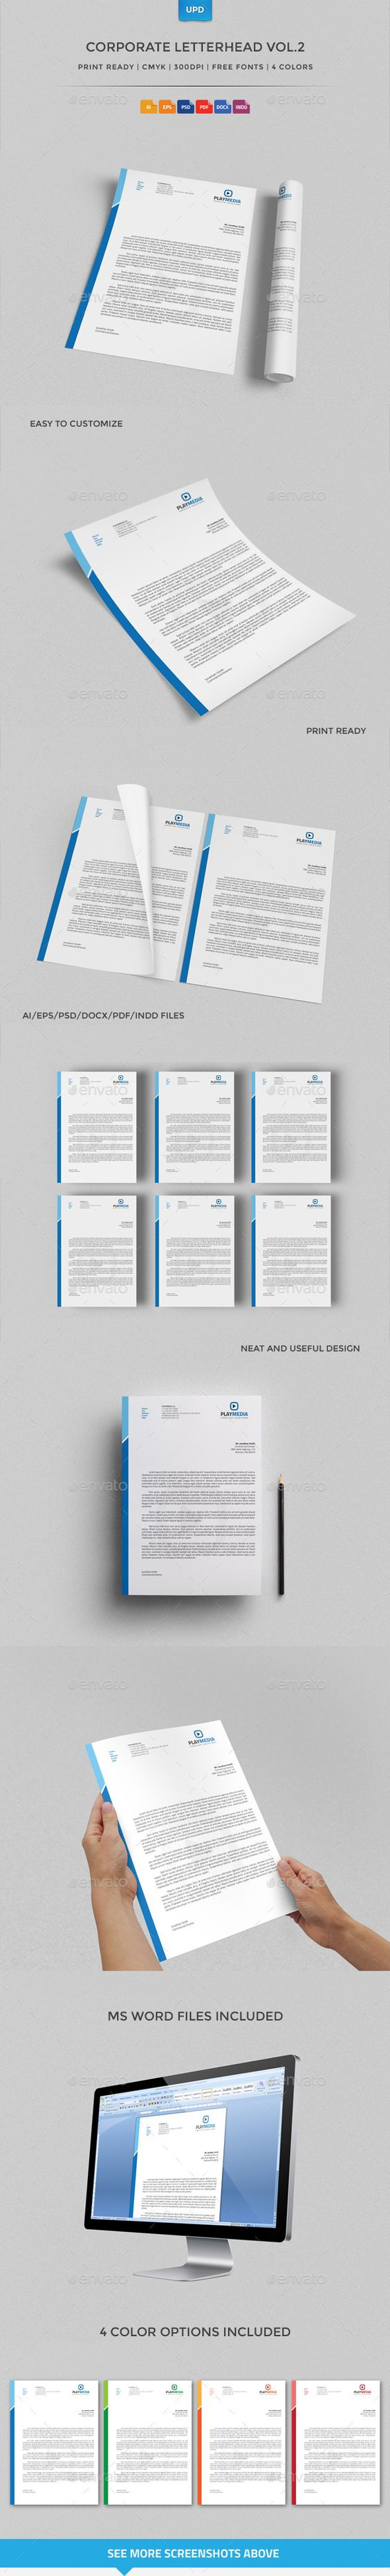 Corporate Letterhead Vol2 with MS Word Doc – Corporate Word Templates